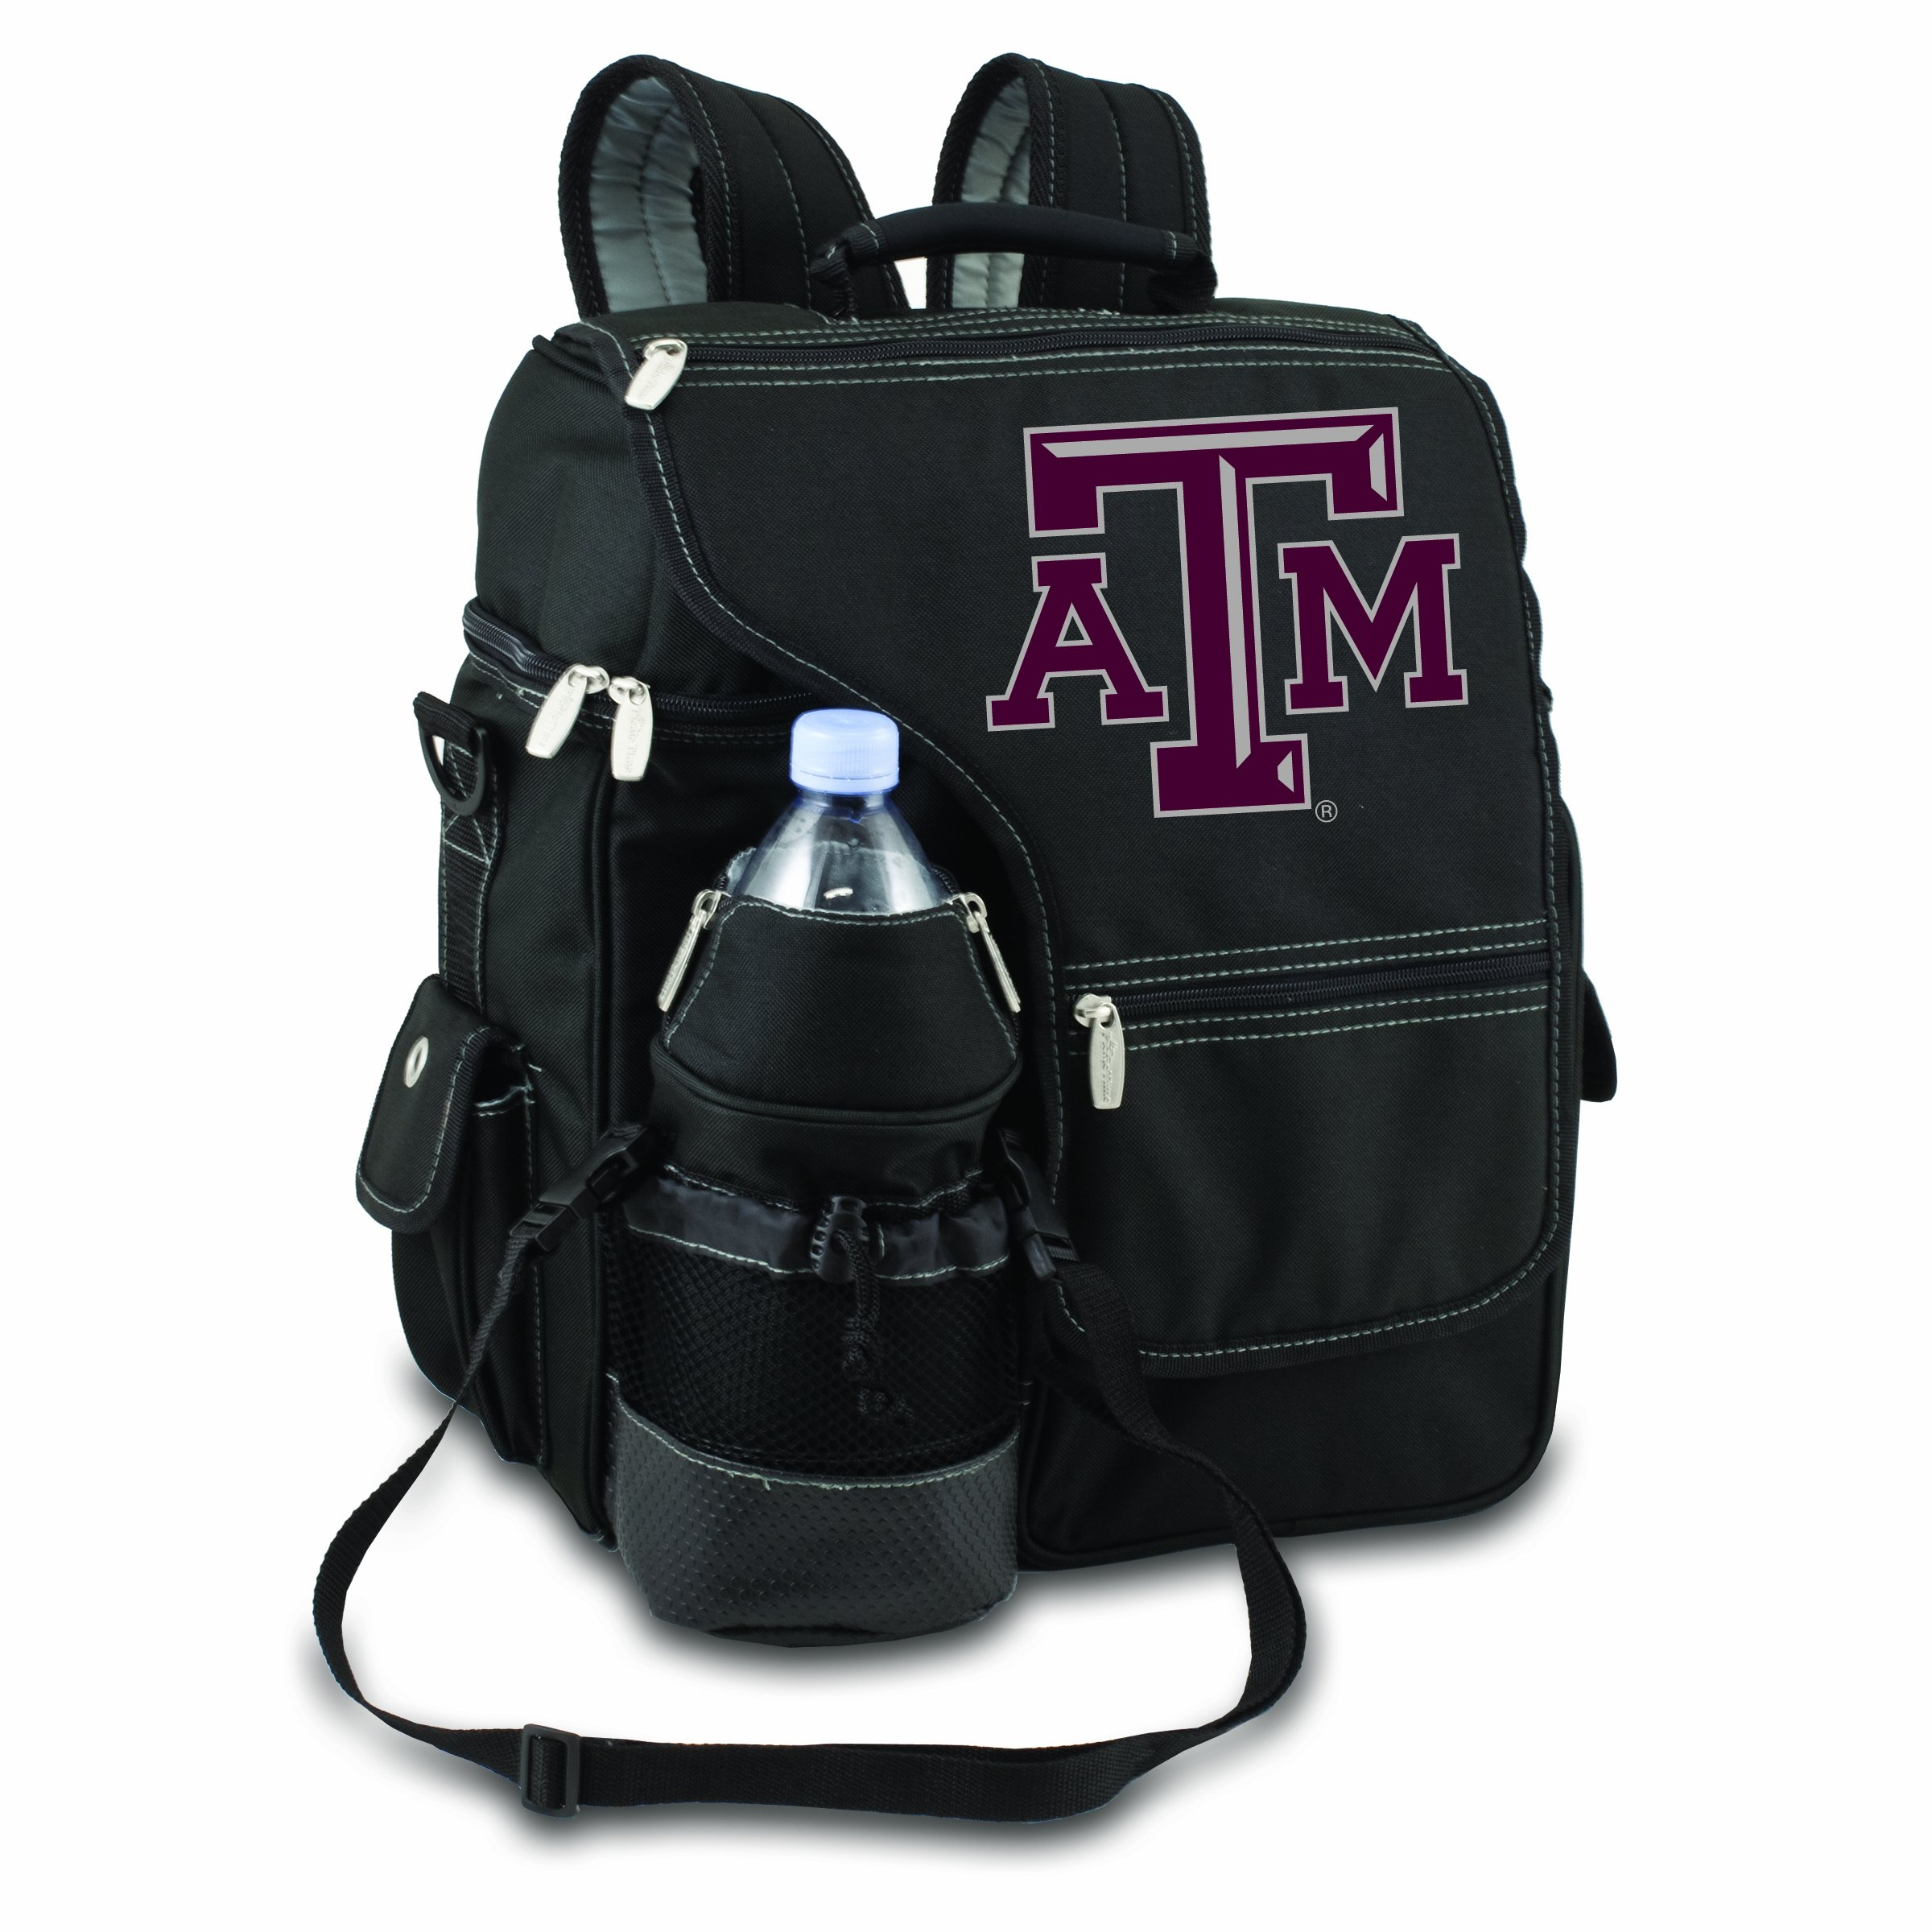 NCAA Texas A&M Aggies Turismo Insulated Backpack Cooler